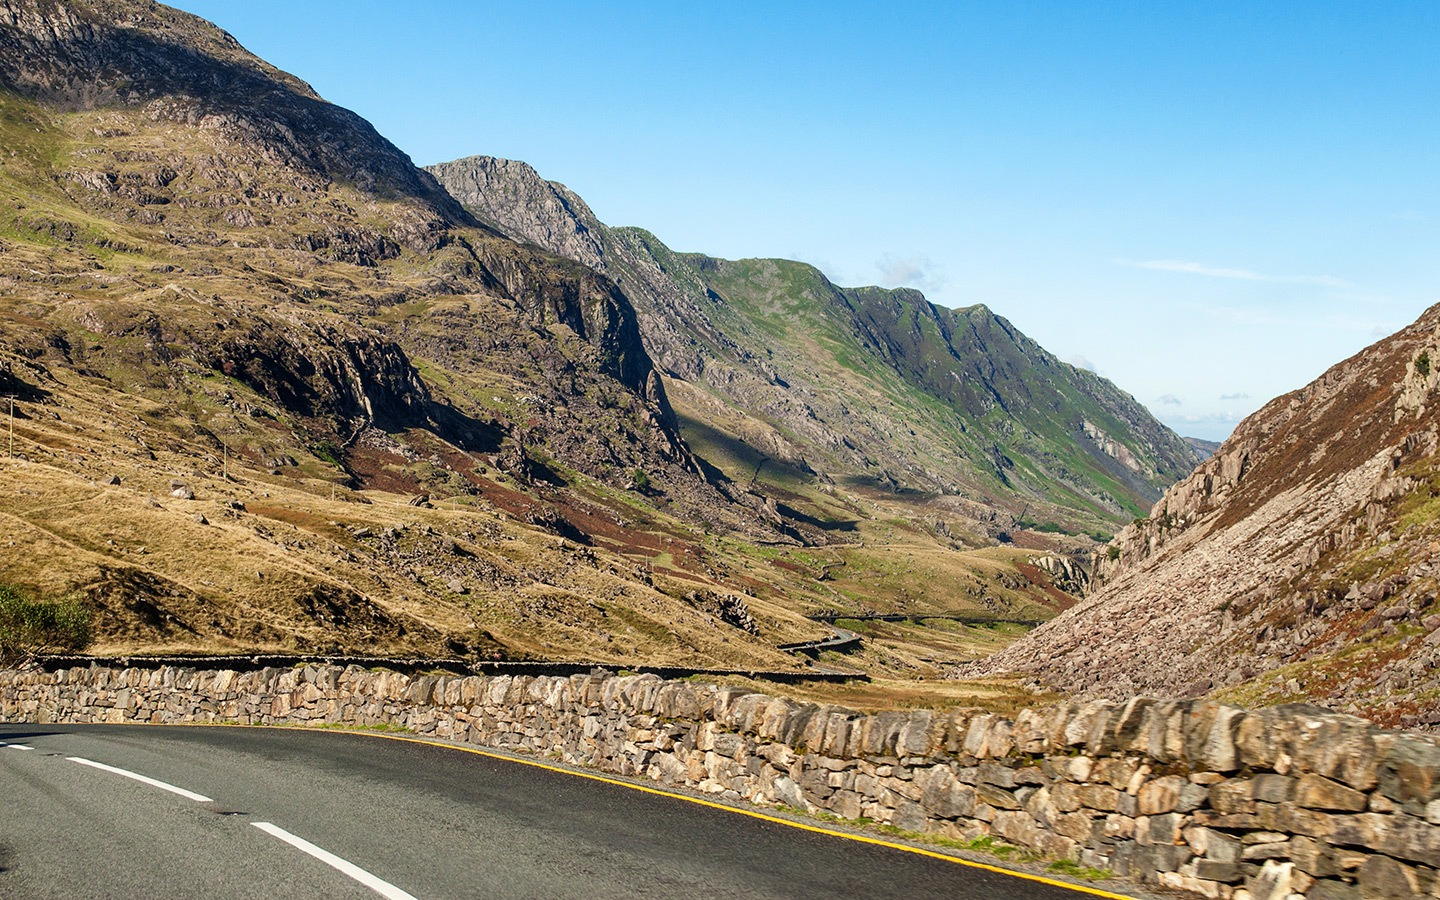 On the road down to Llanberis on a North Wales road trip